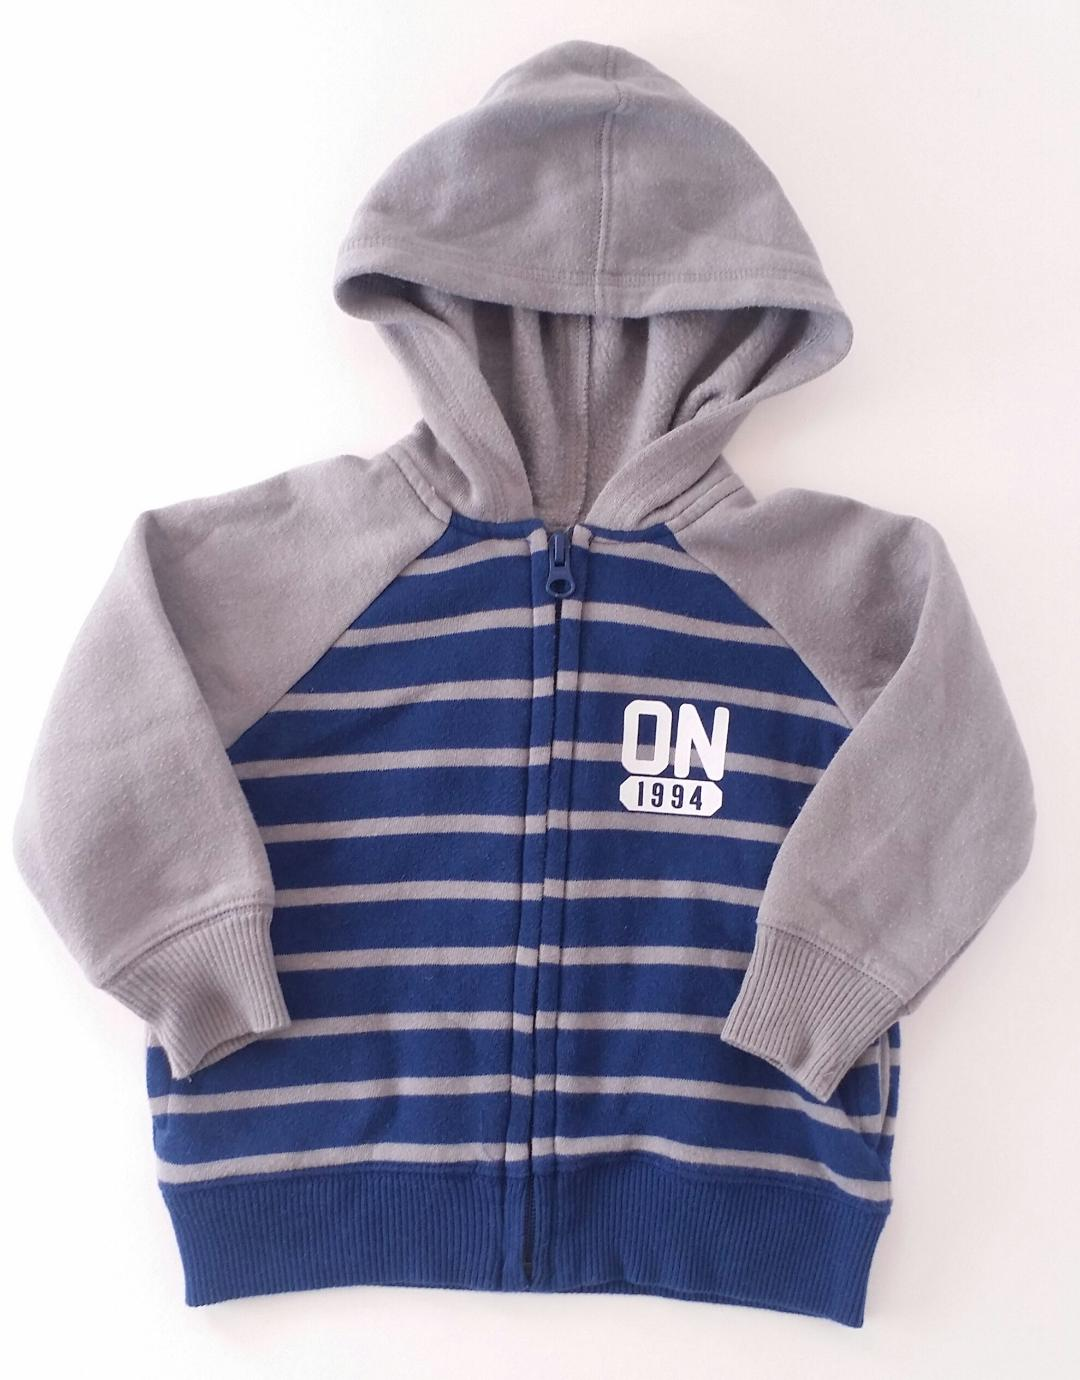 Old-Navy.-18-24-MONTHS-Striped-Jacket_2153294A.jpg